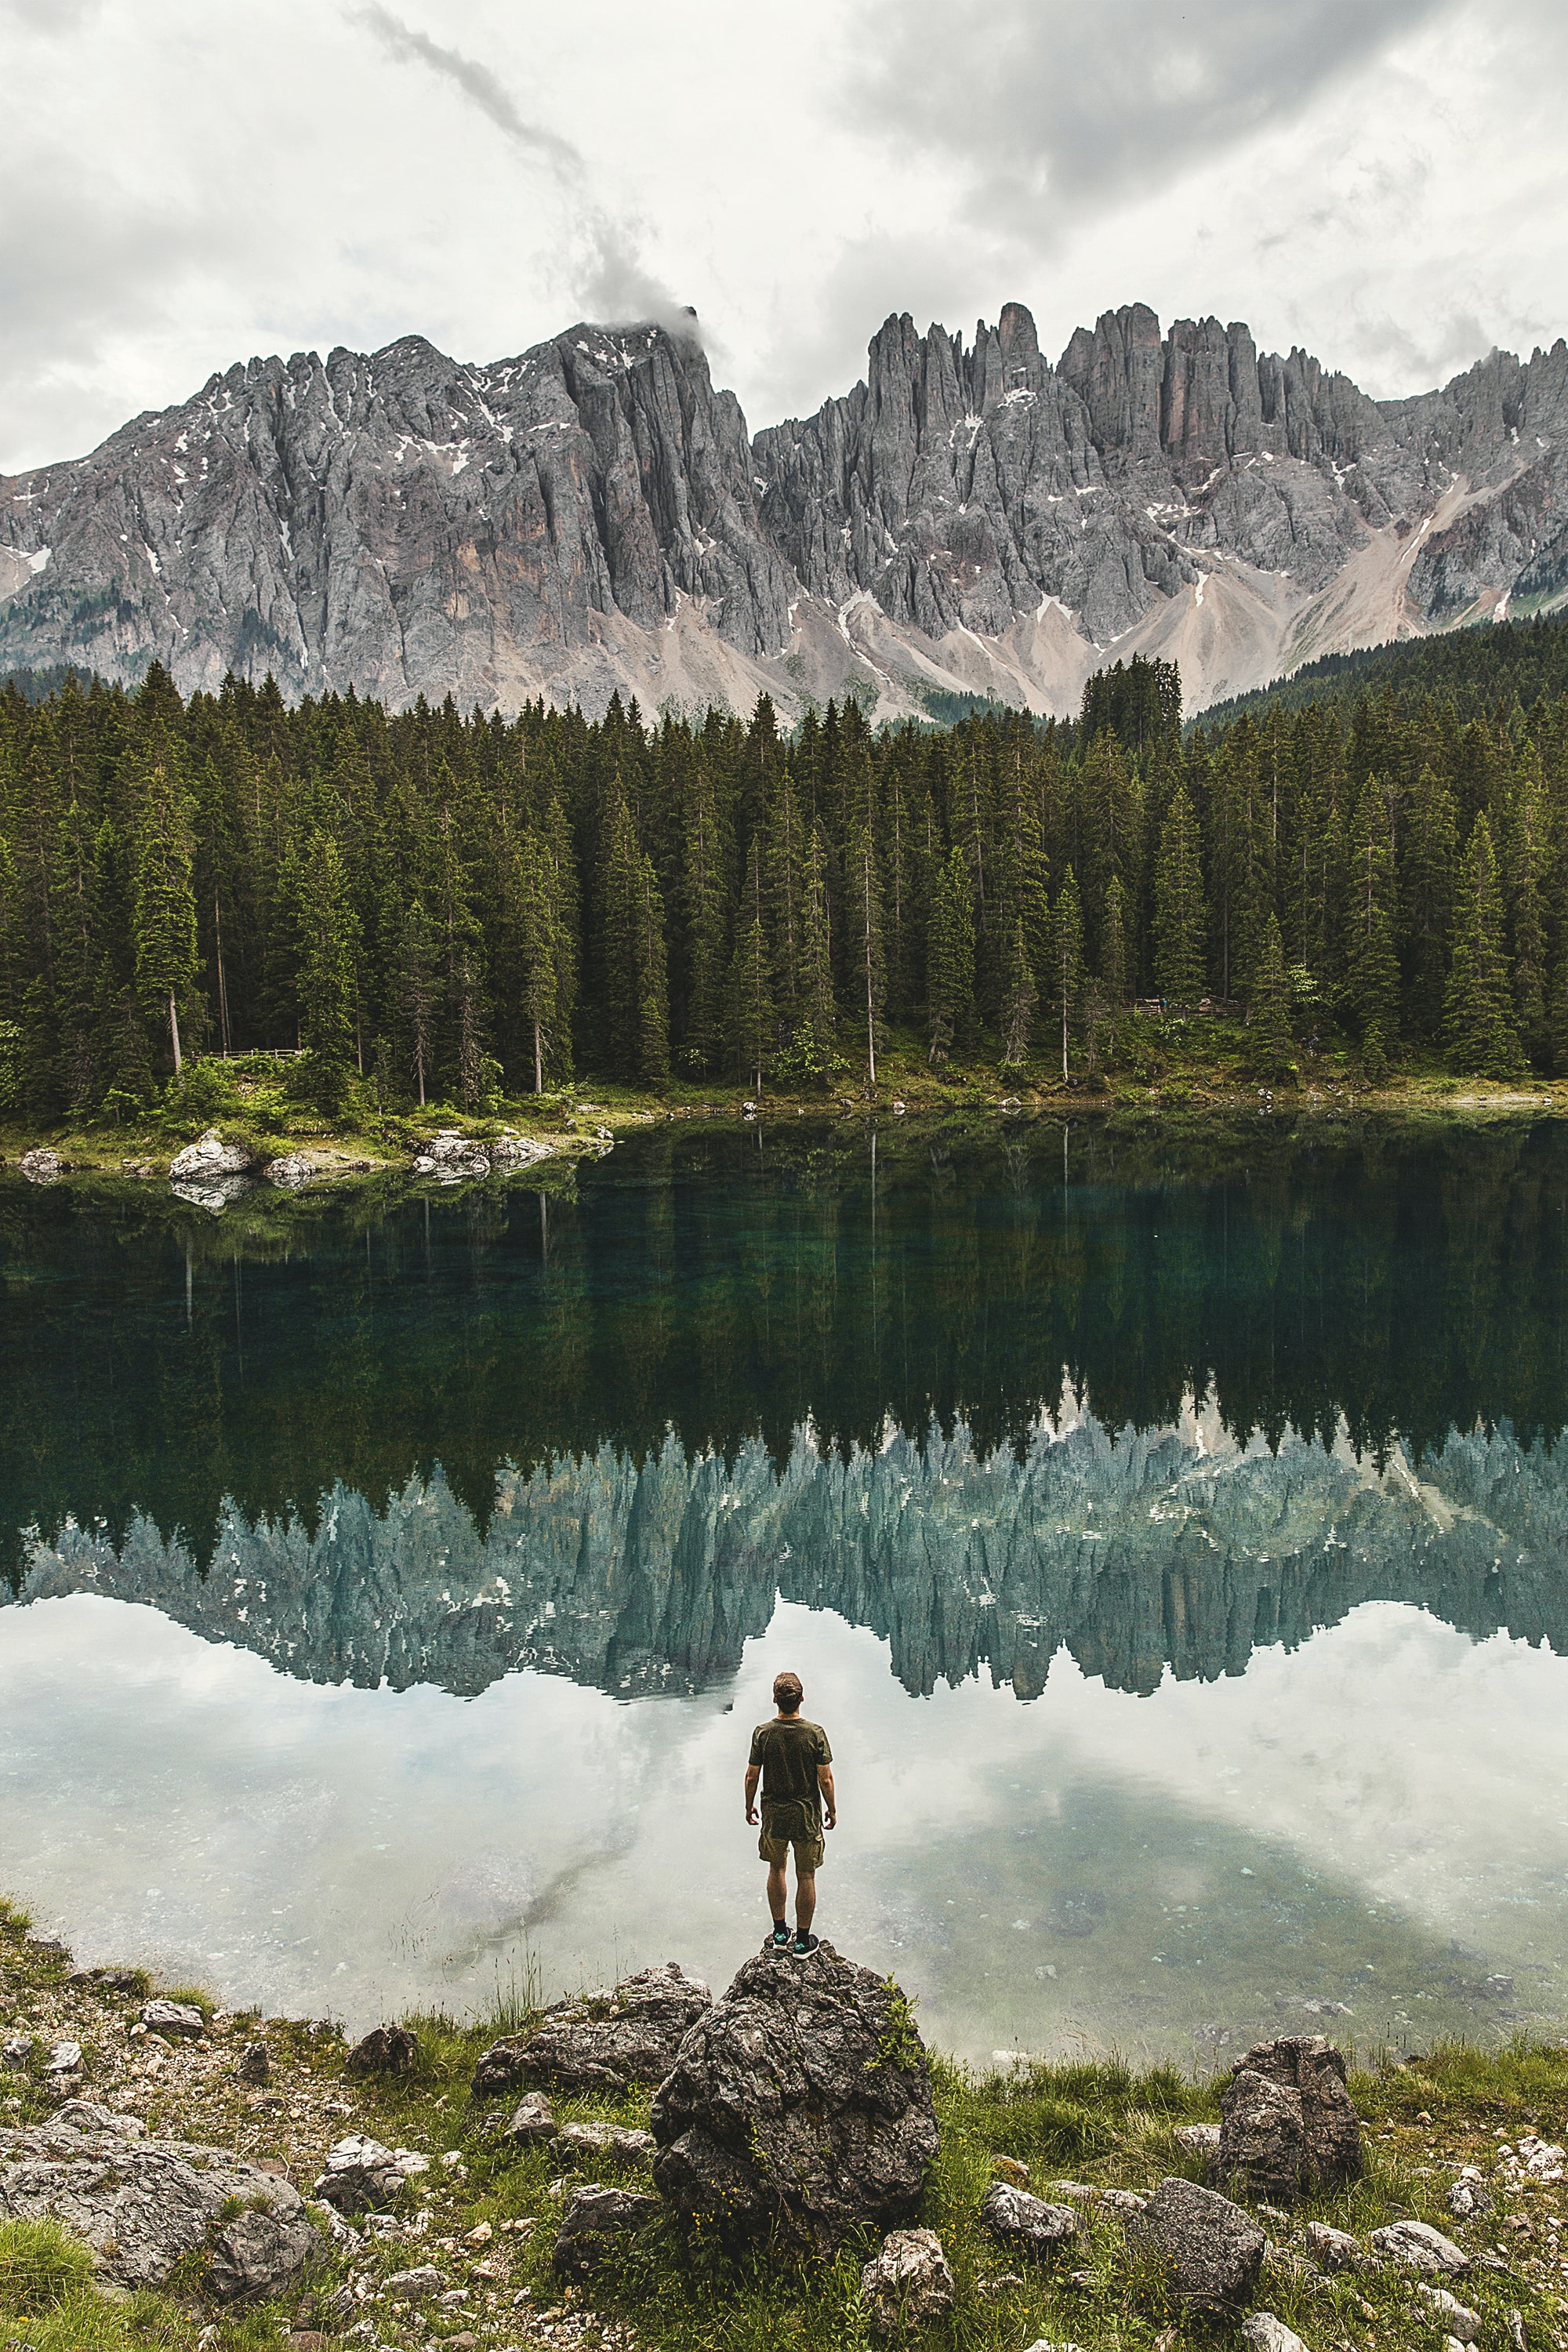 A man standing on a boulder staring at a mountain pond.